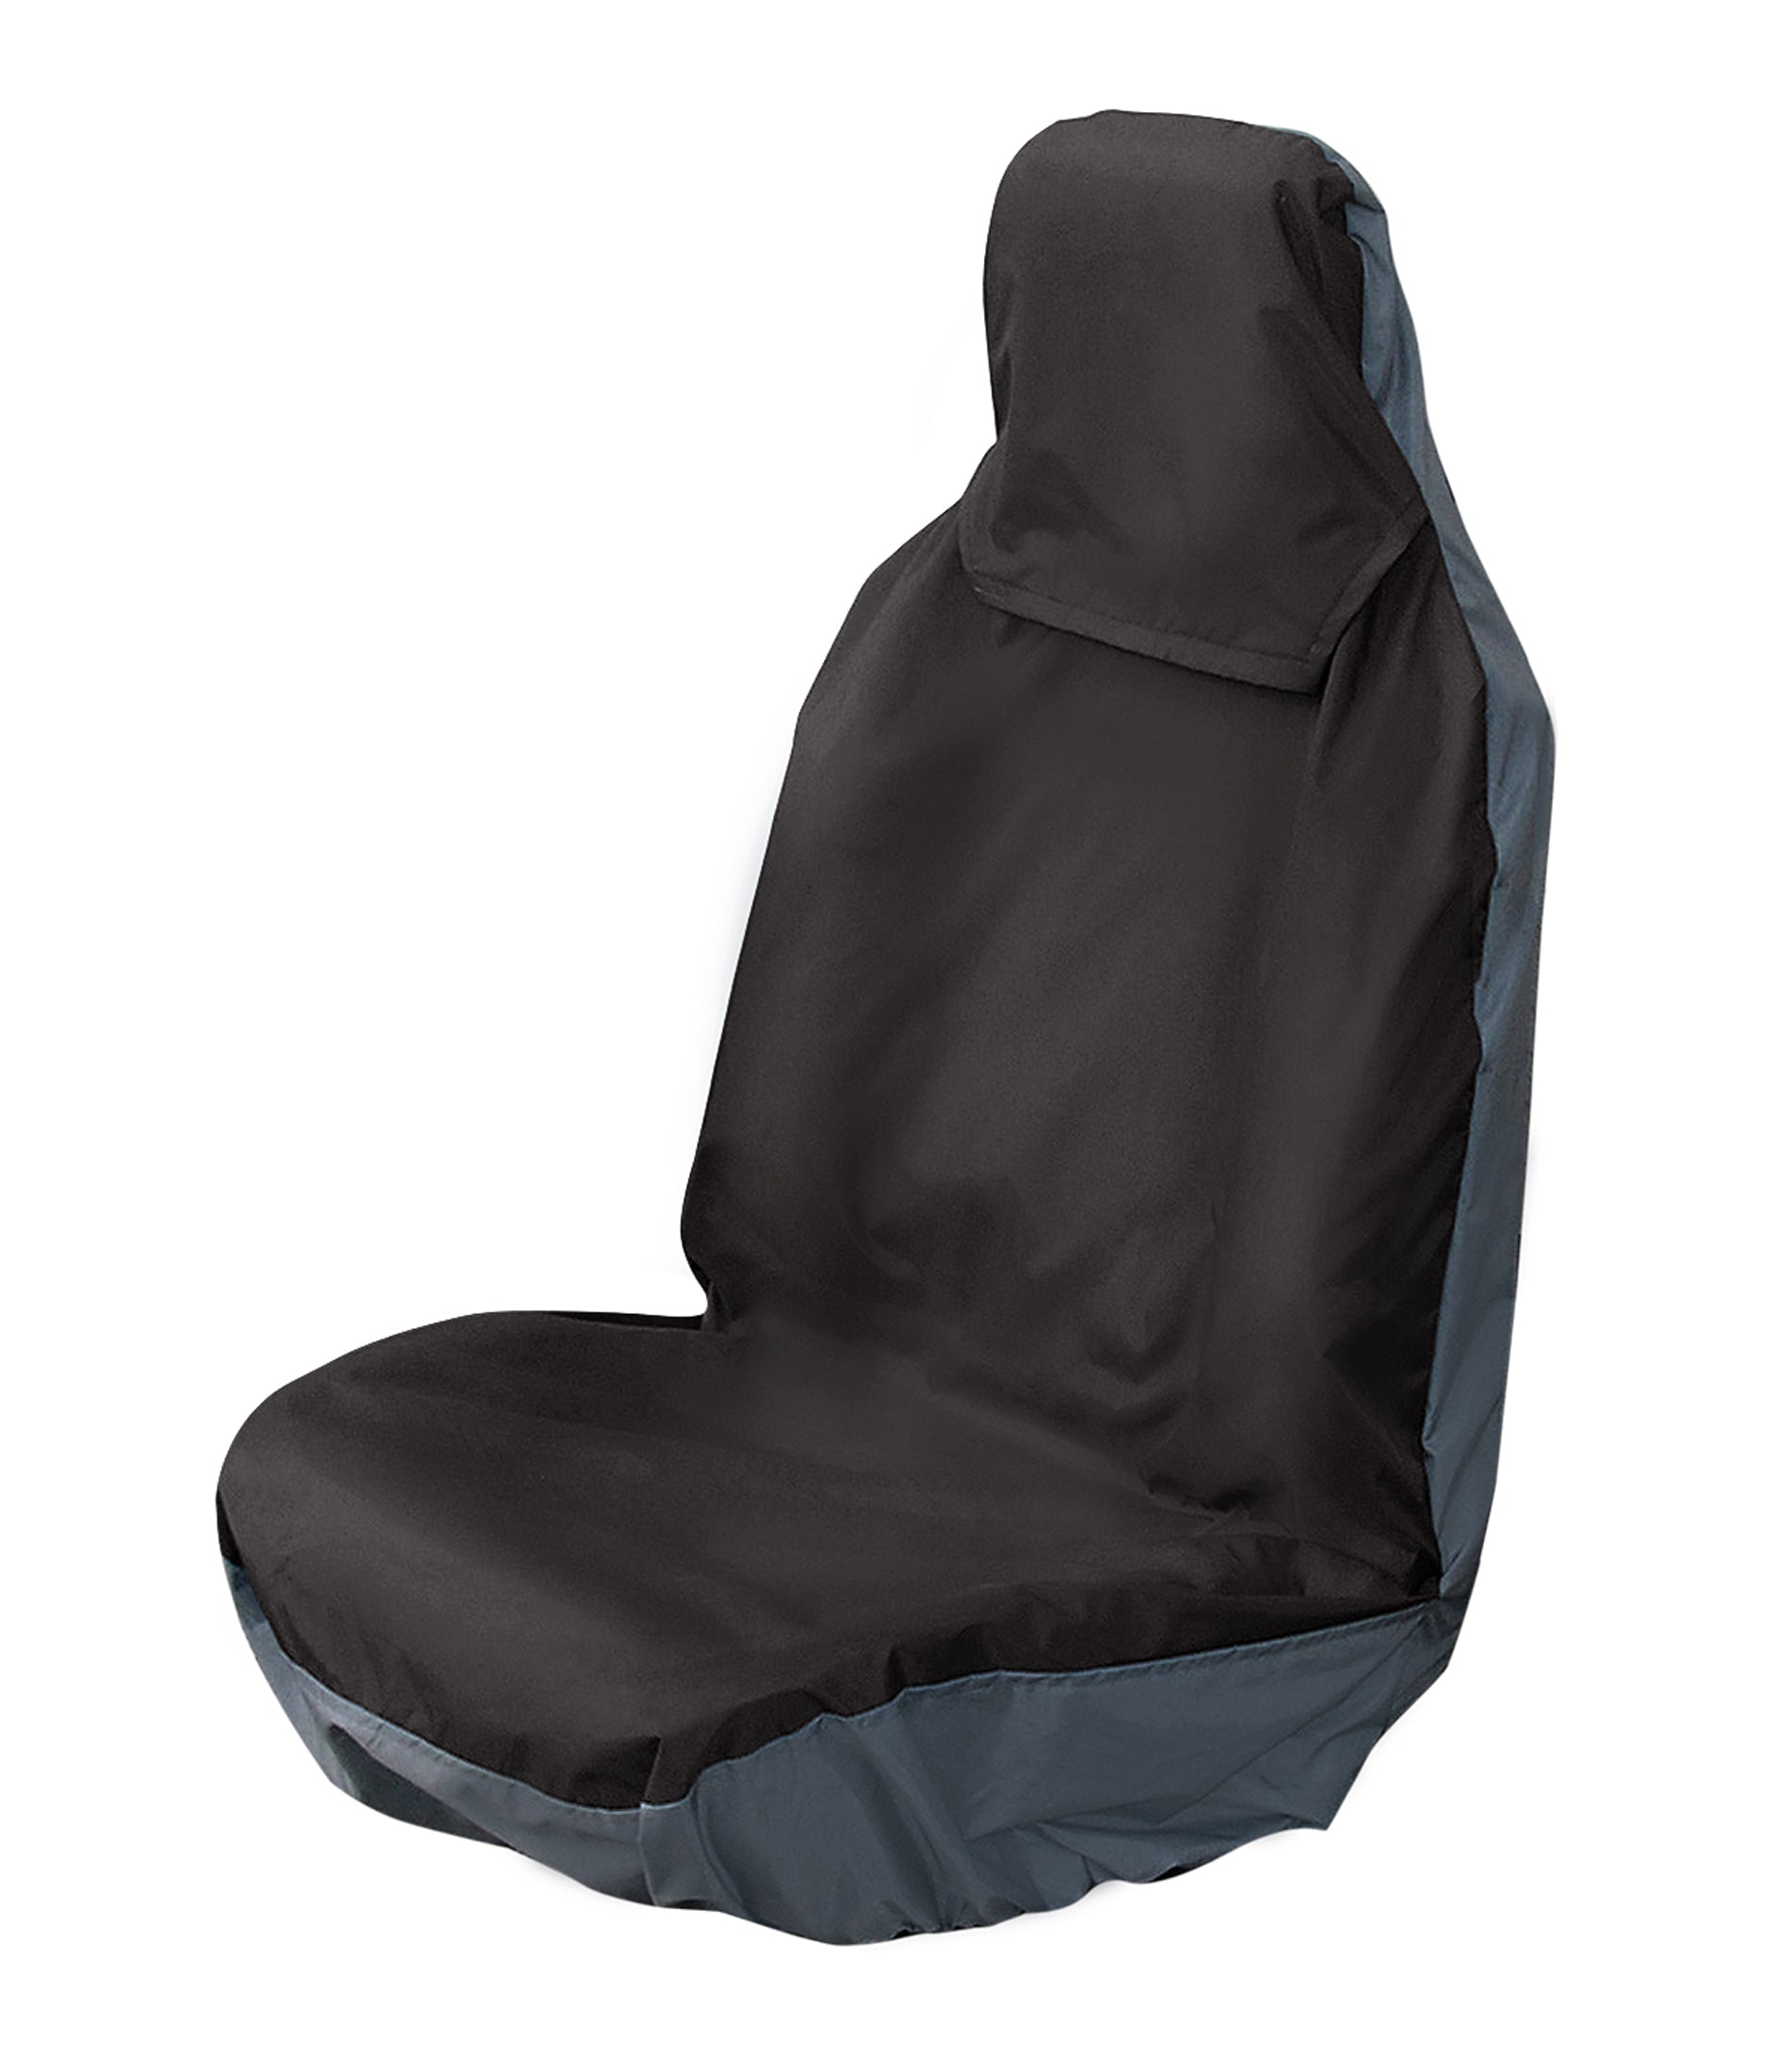 Universal Rear Seat Covers 3 Headrests with Middle Inertia Seatbelt